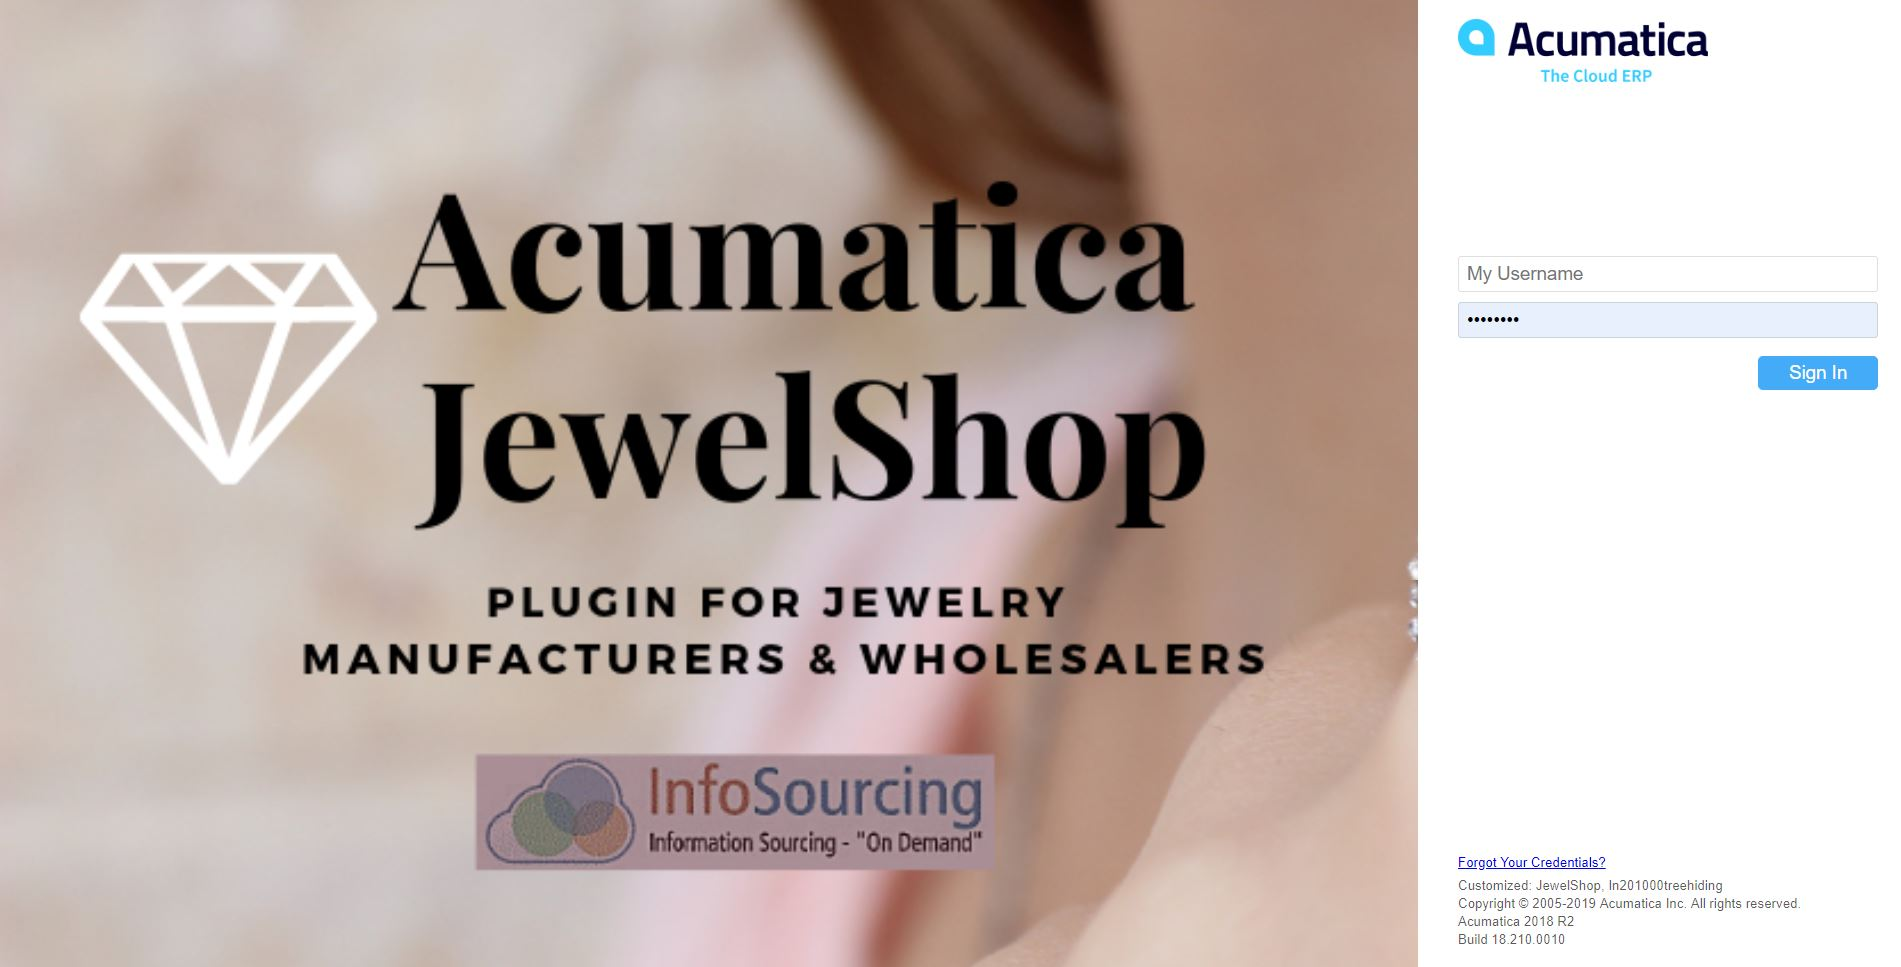 1_Acumatica-JewelShop-Login